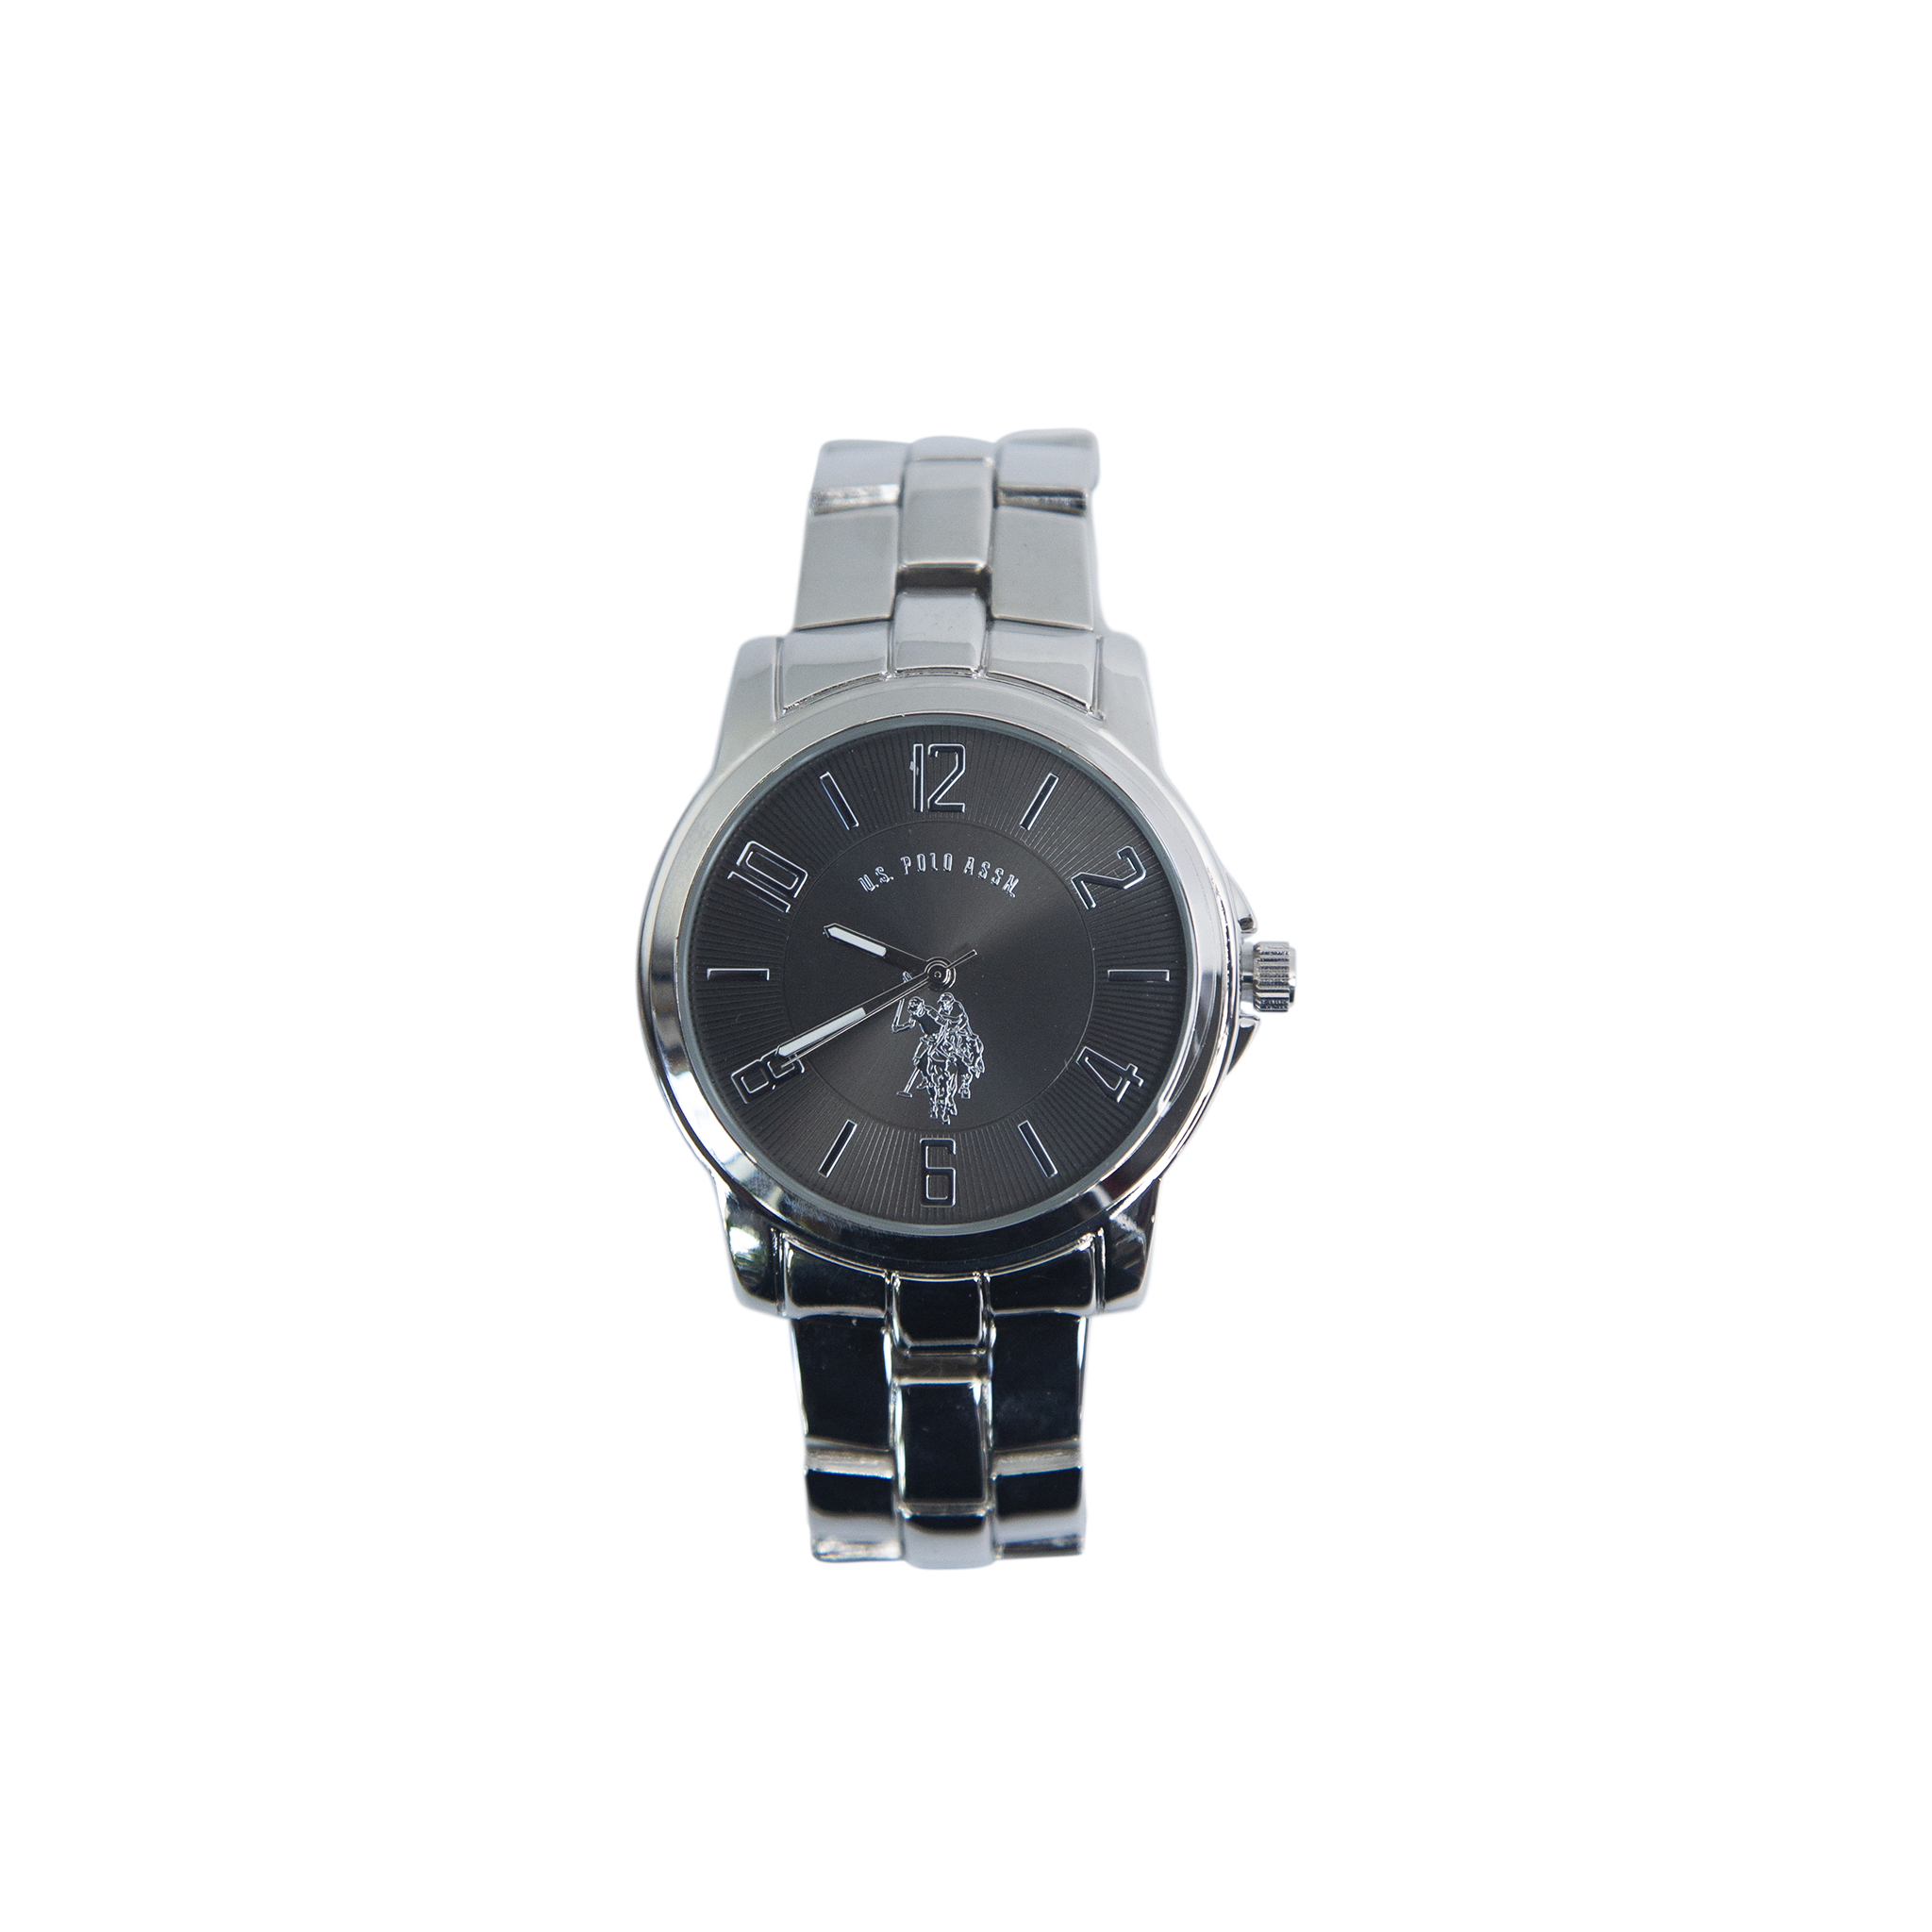 US Polo Watch in Silver – USC80041